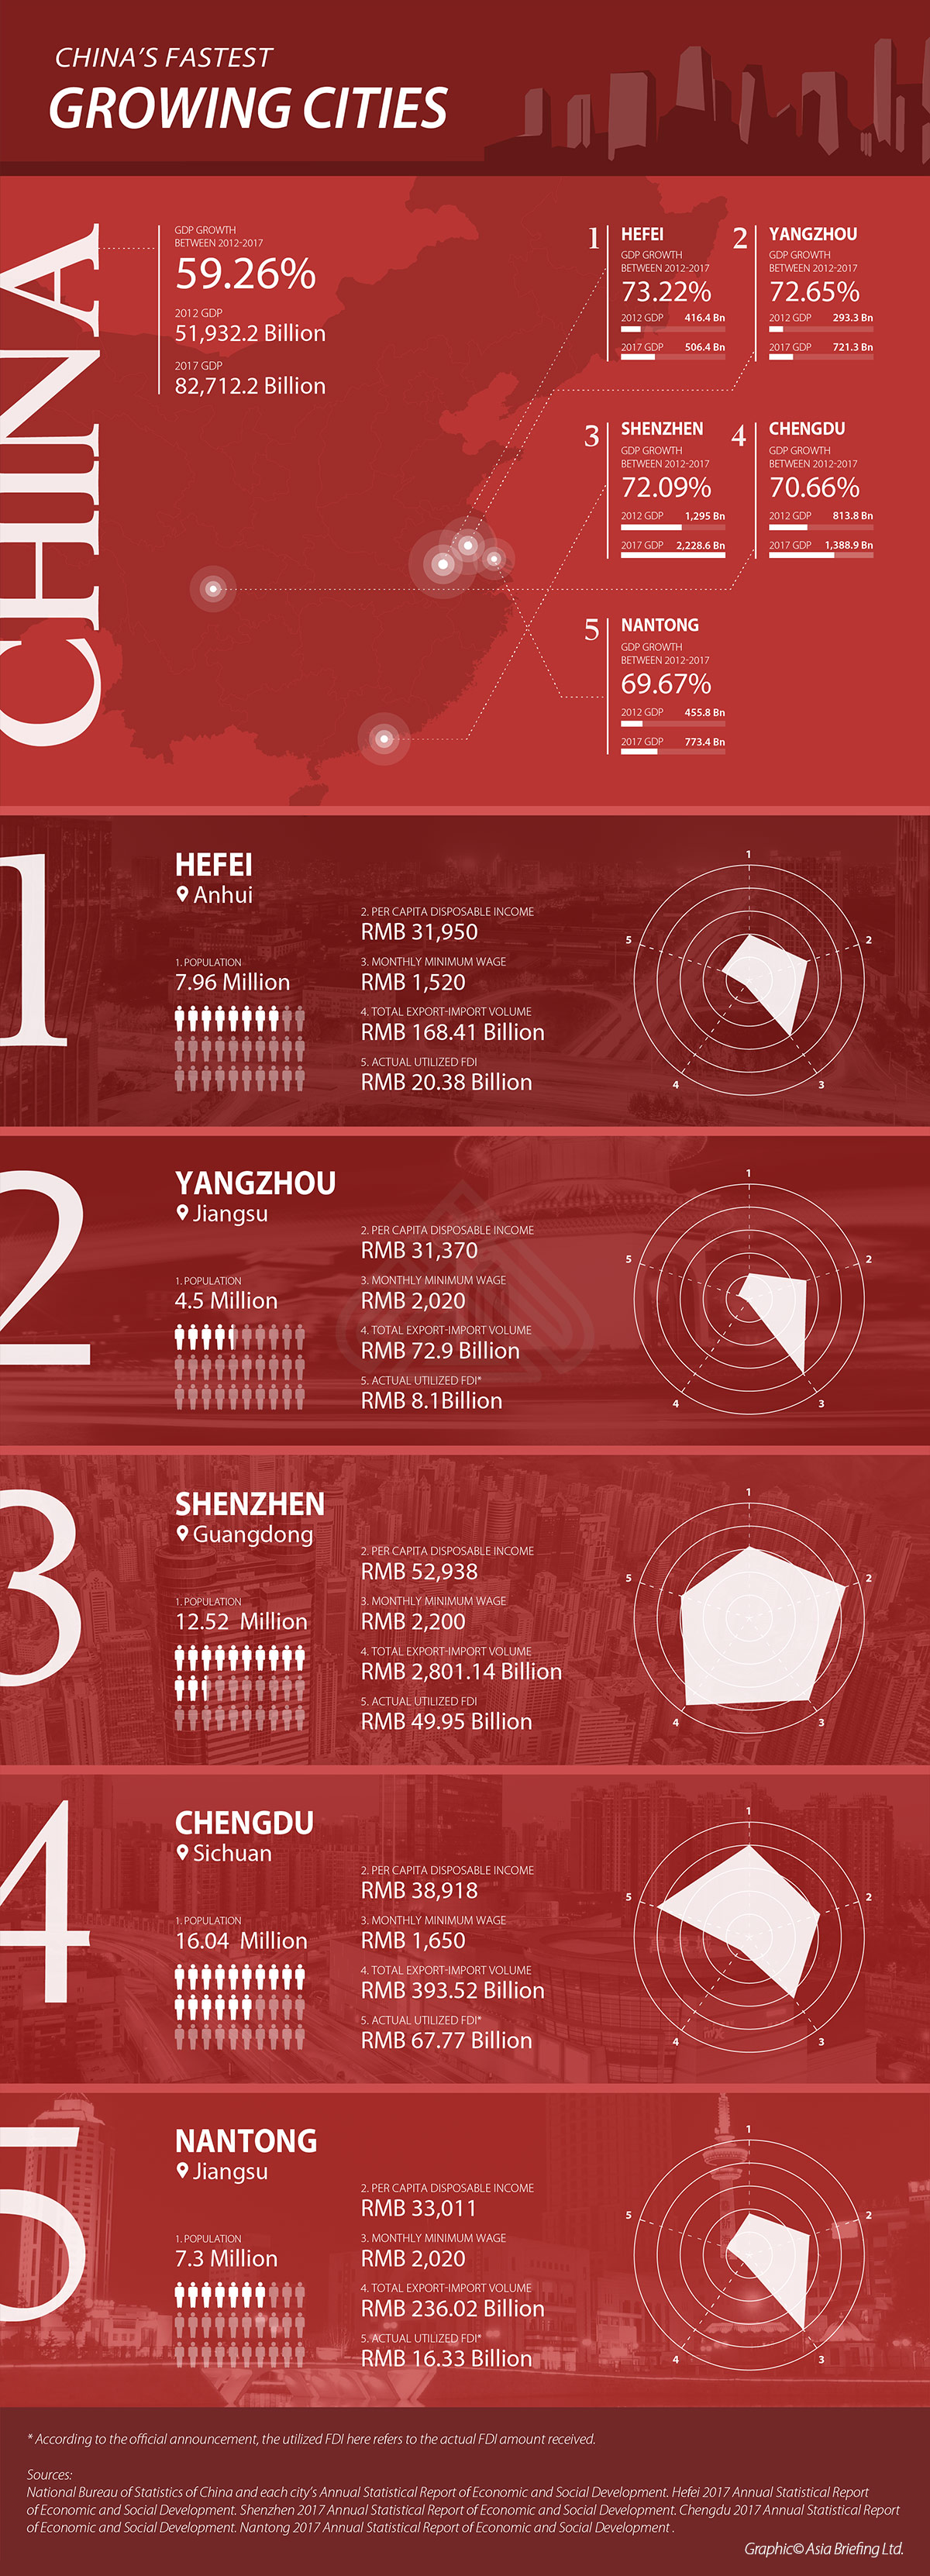 CB-China's-fastest-growing-cities